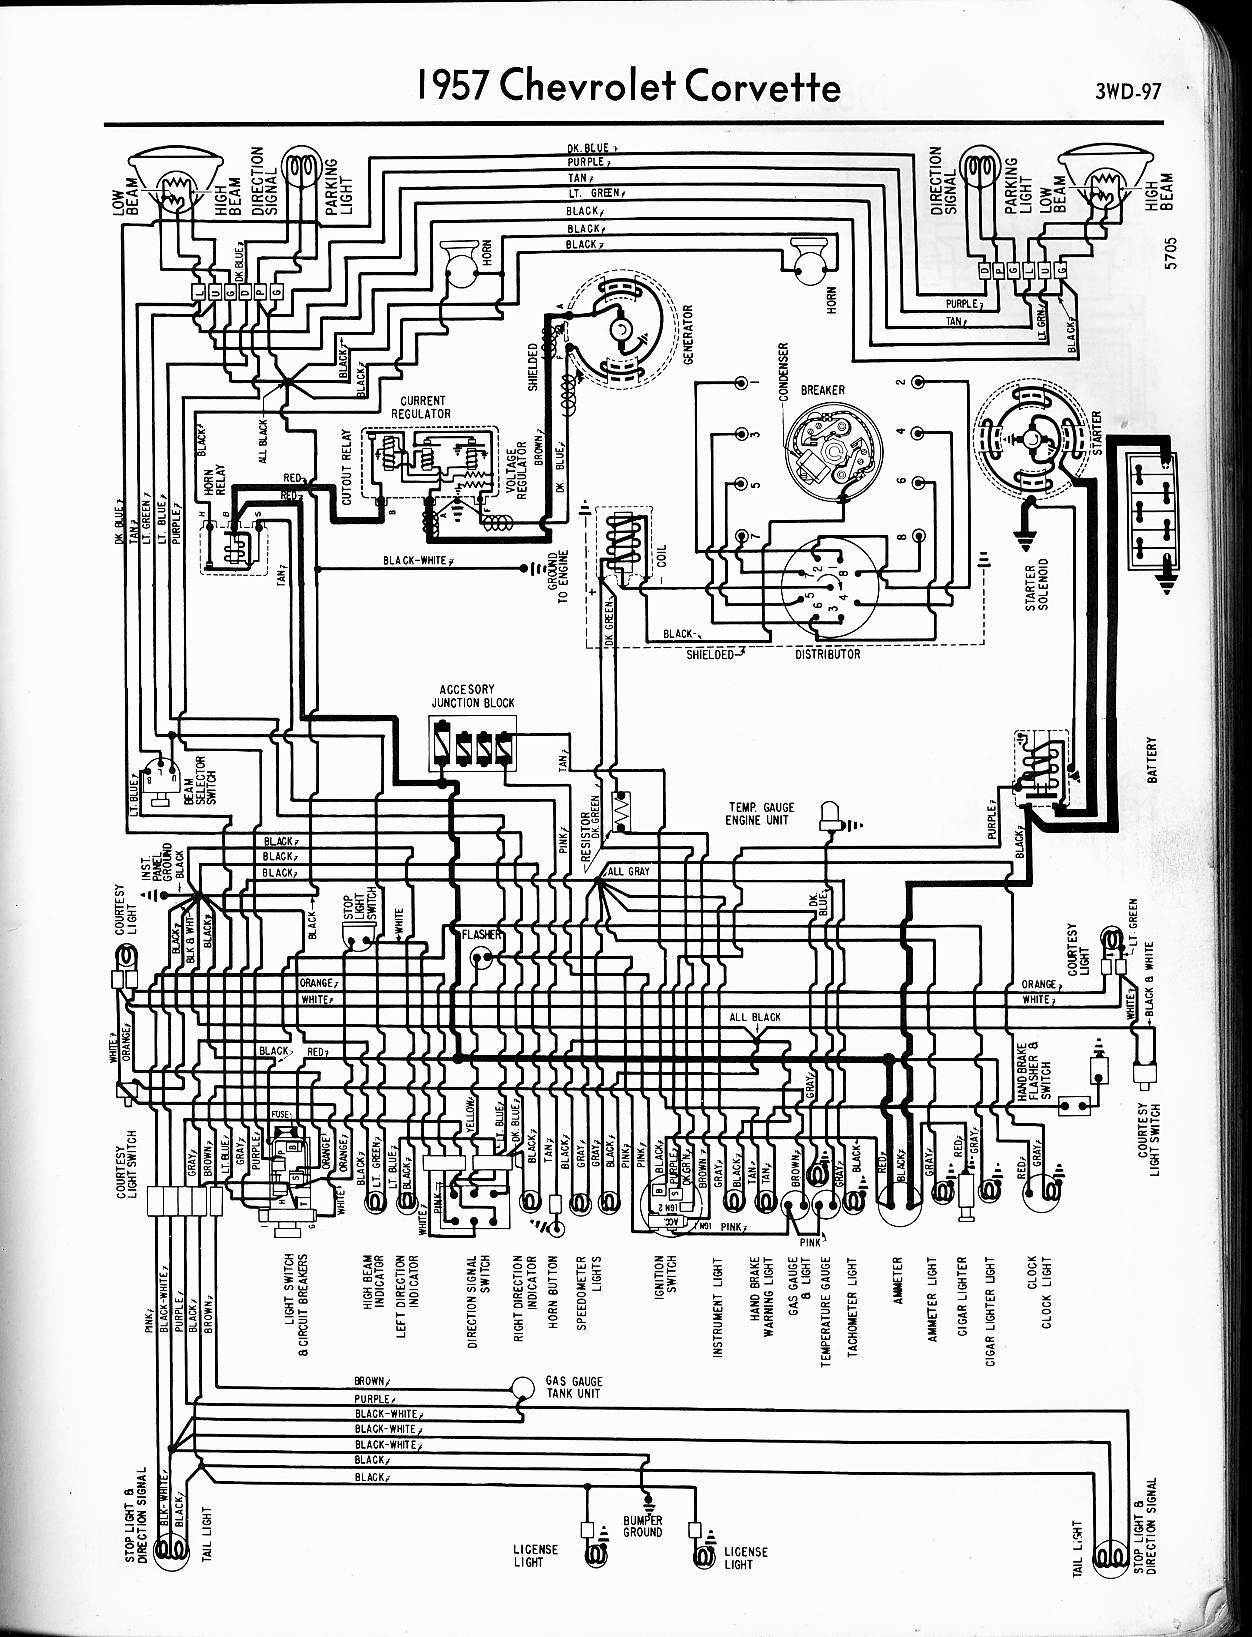 MWireChev57_3WD 097 57 65 chevy wiring diagrams 57 chevy truck wiring harness at n-0.co